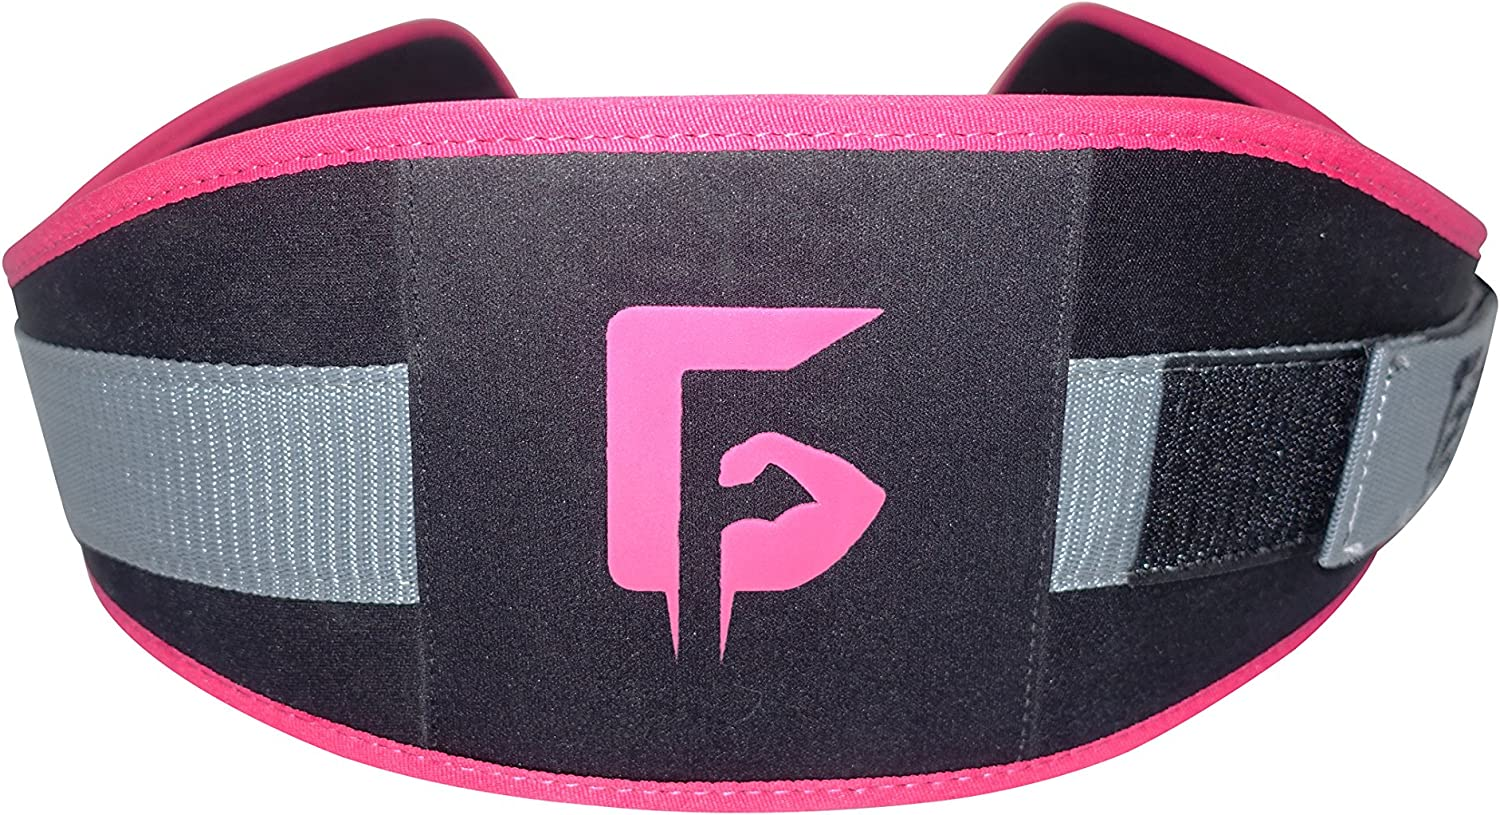 Gunsmith Fitness Women s Weight Lifting Belt – Perfect for Crossfit, Gym, Back Support, Bodybuilding, Squats, Deadlifts